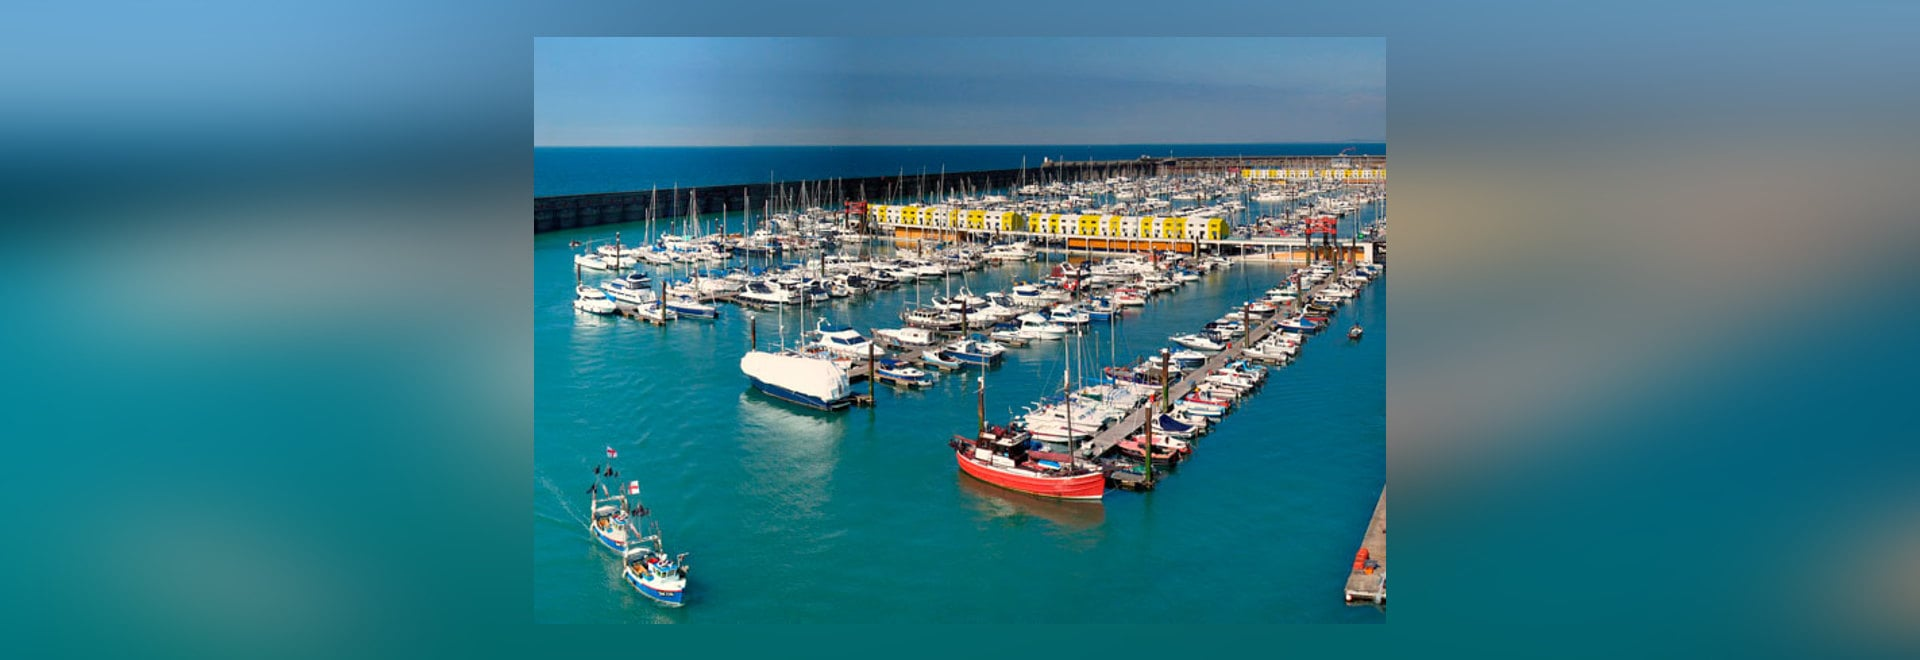 Marinas For Sale >> Premier Marinas For Sale Priced At Around 220m Brighton